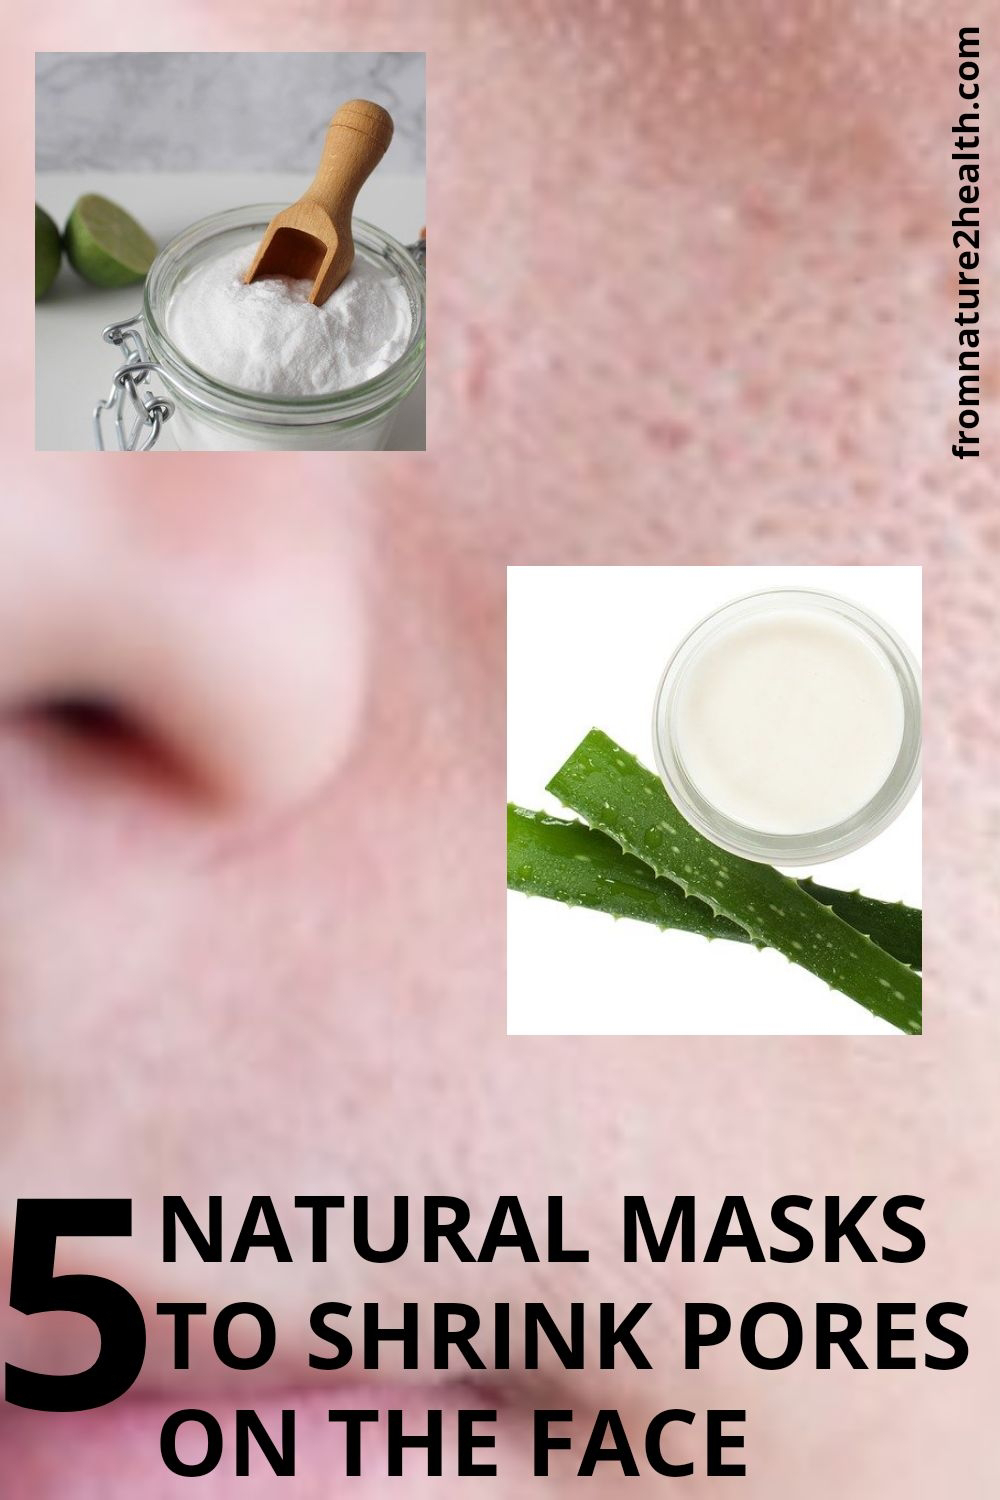 Apple Vinegar, Cucumber, Honey, Lemon is Natural Masks to Shrink Pores on the Face